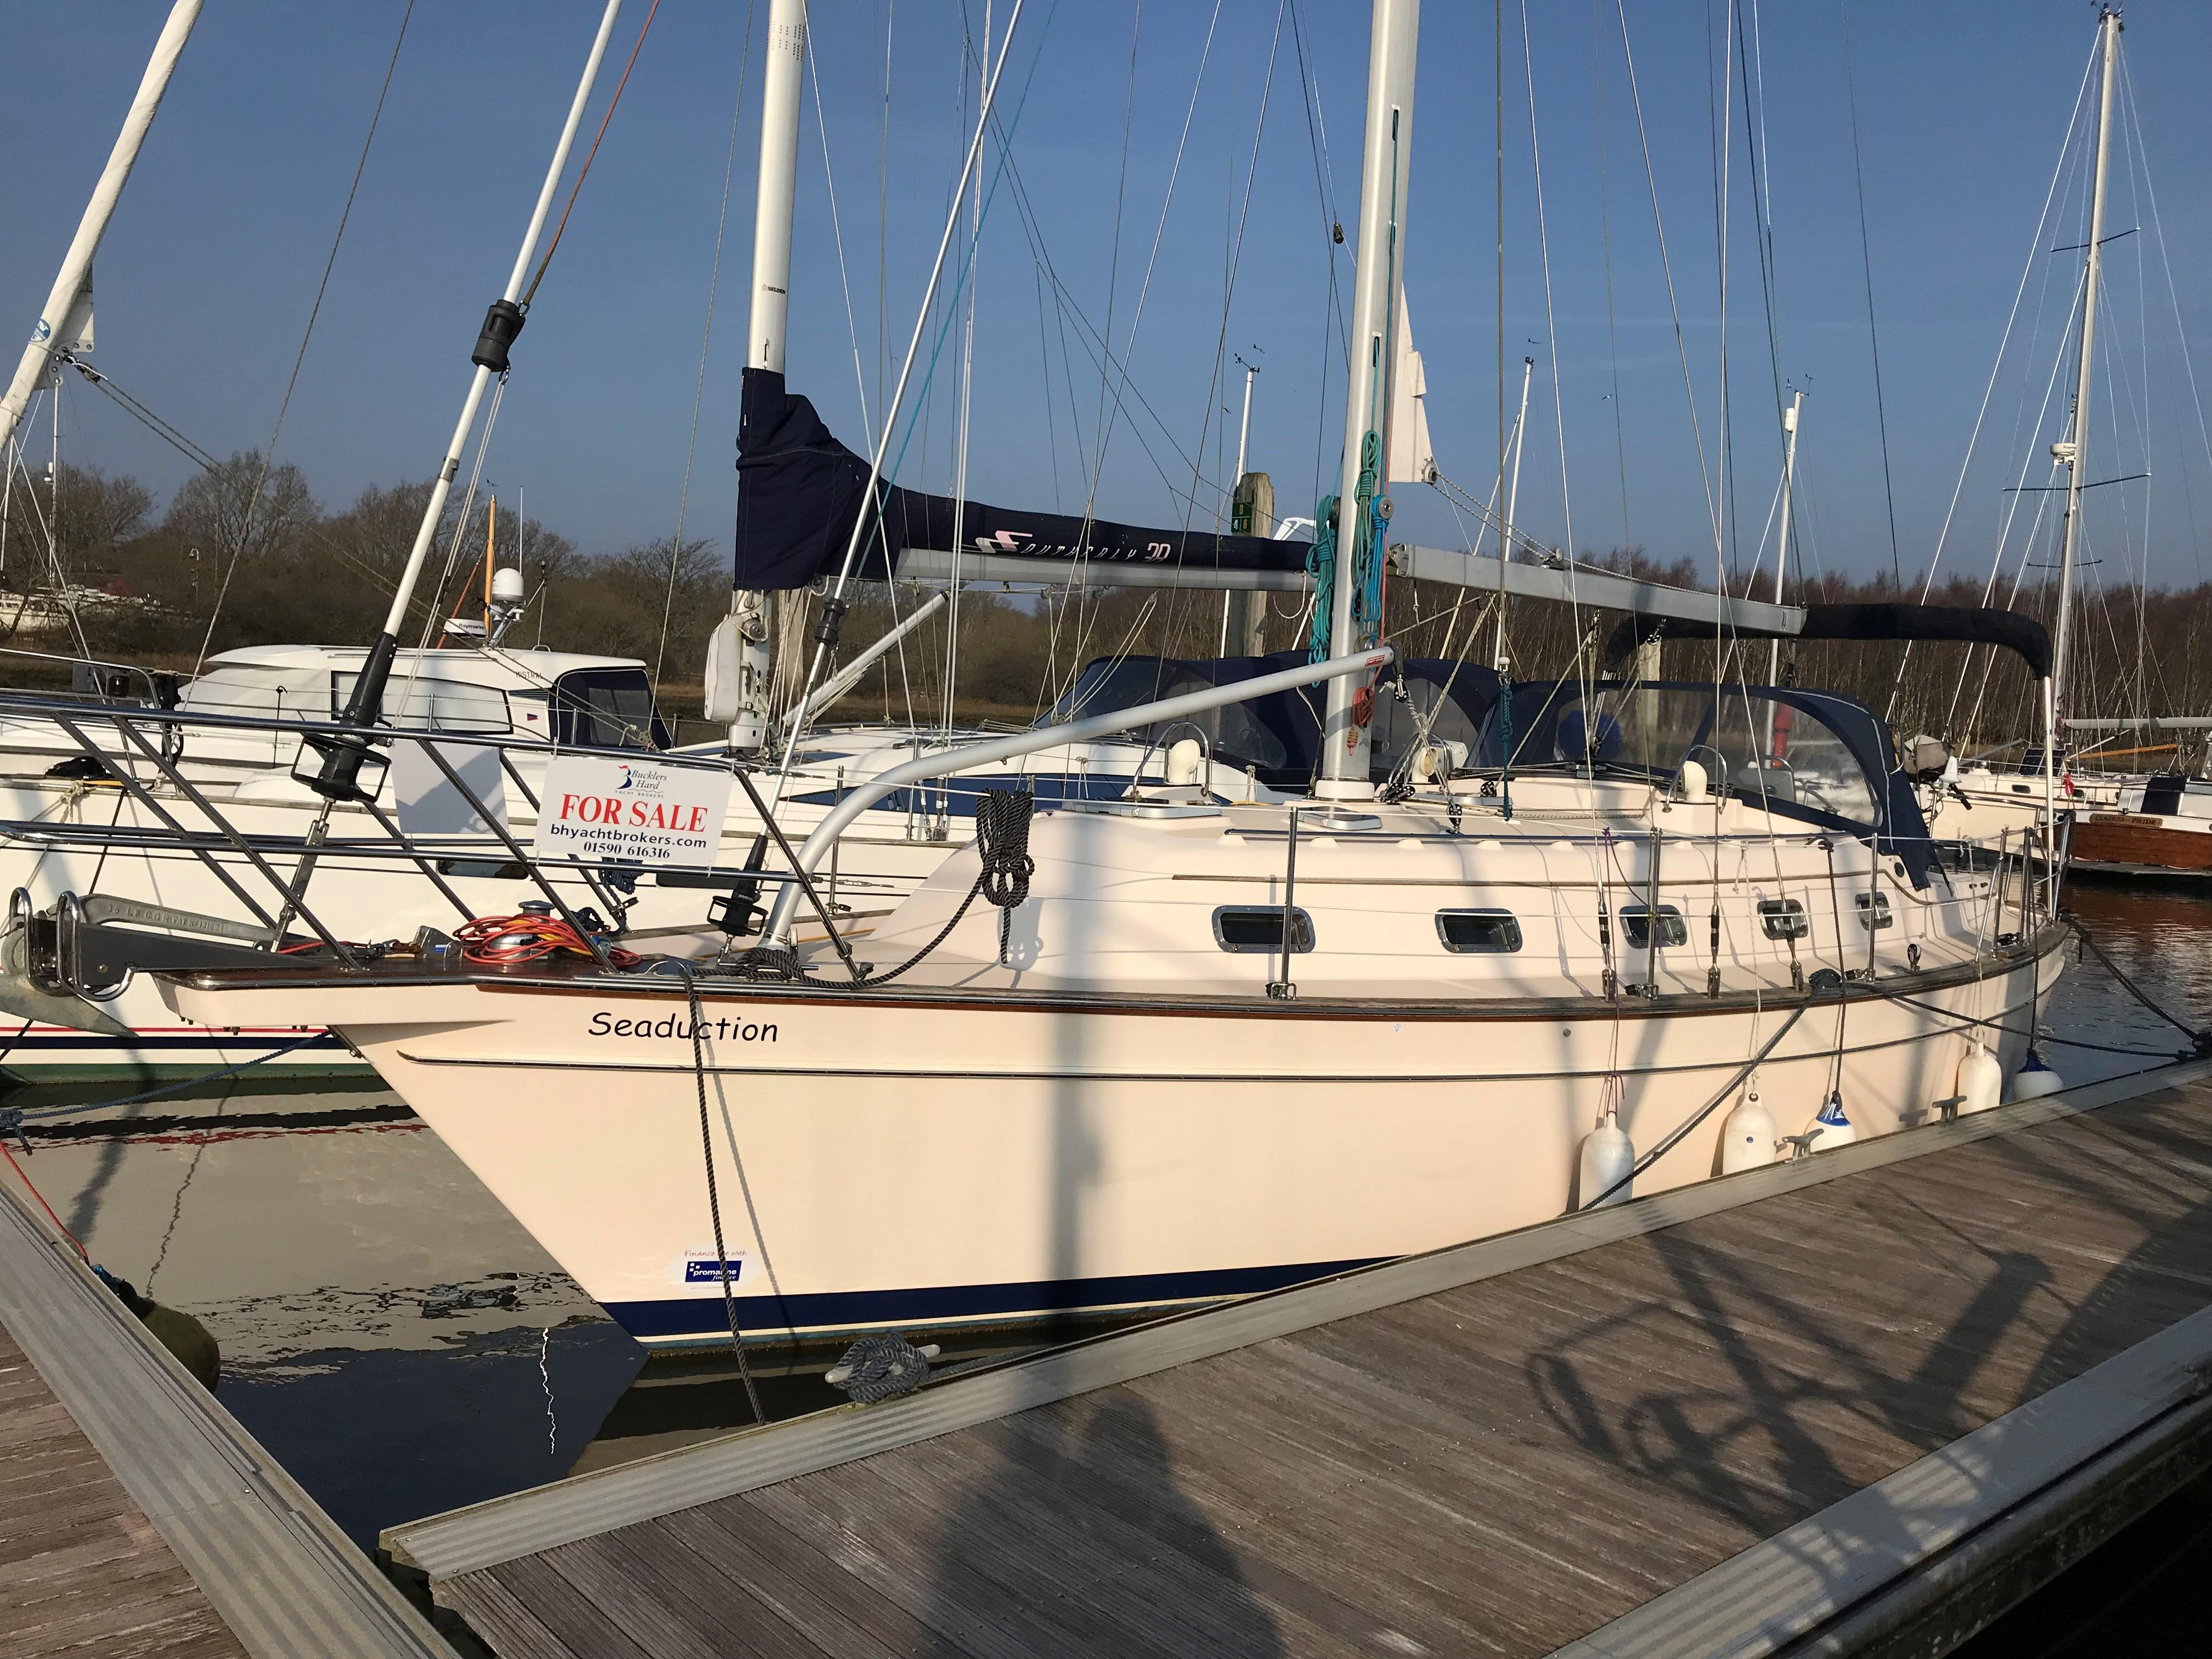 2004 Island Packet 370 Sail New And Used Boats For Sale